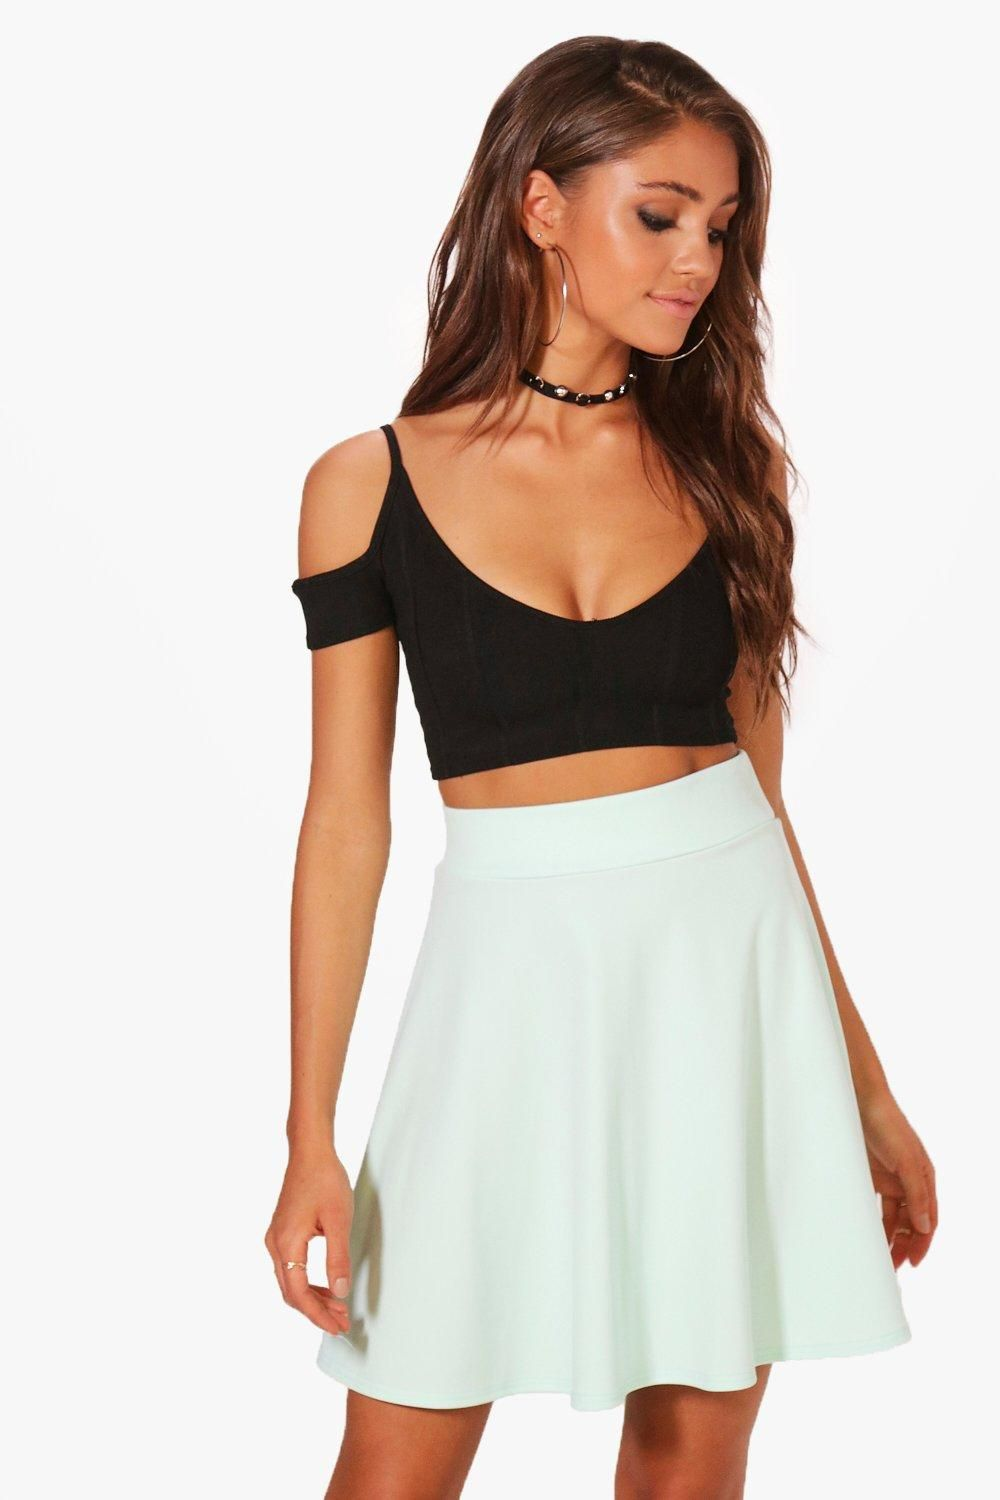 5b110b0c55c0b Click here to find out about the Tamsin Fit & Flare Highwaist Mini Skirt  from Boohoo, part of our latest Going Out collection ready to shop online  today!